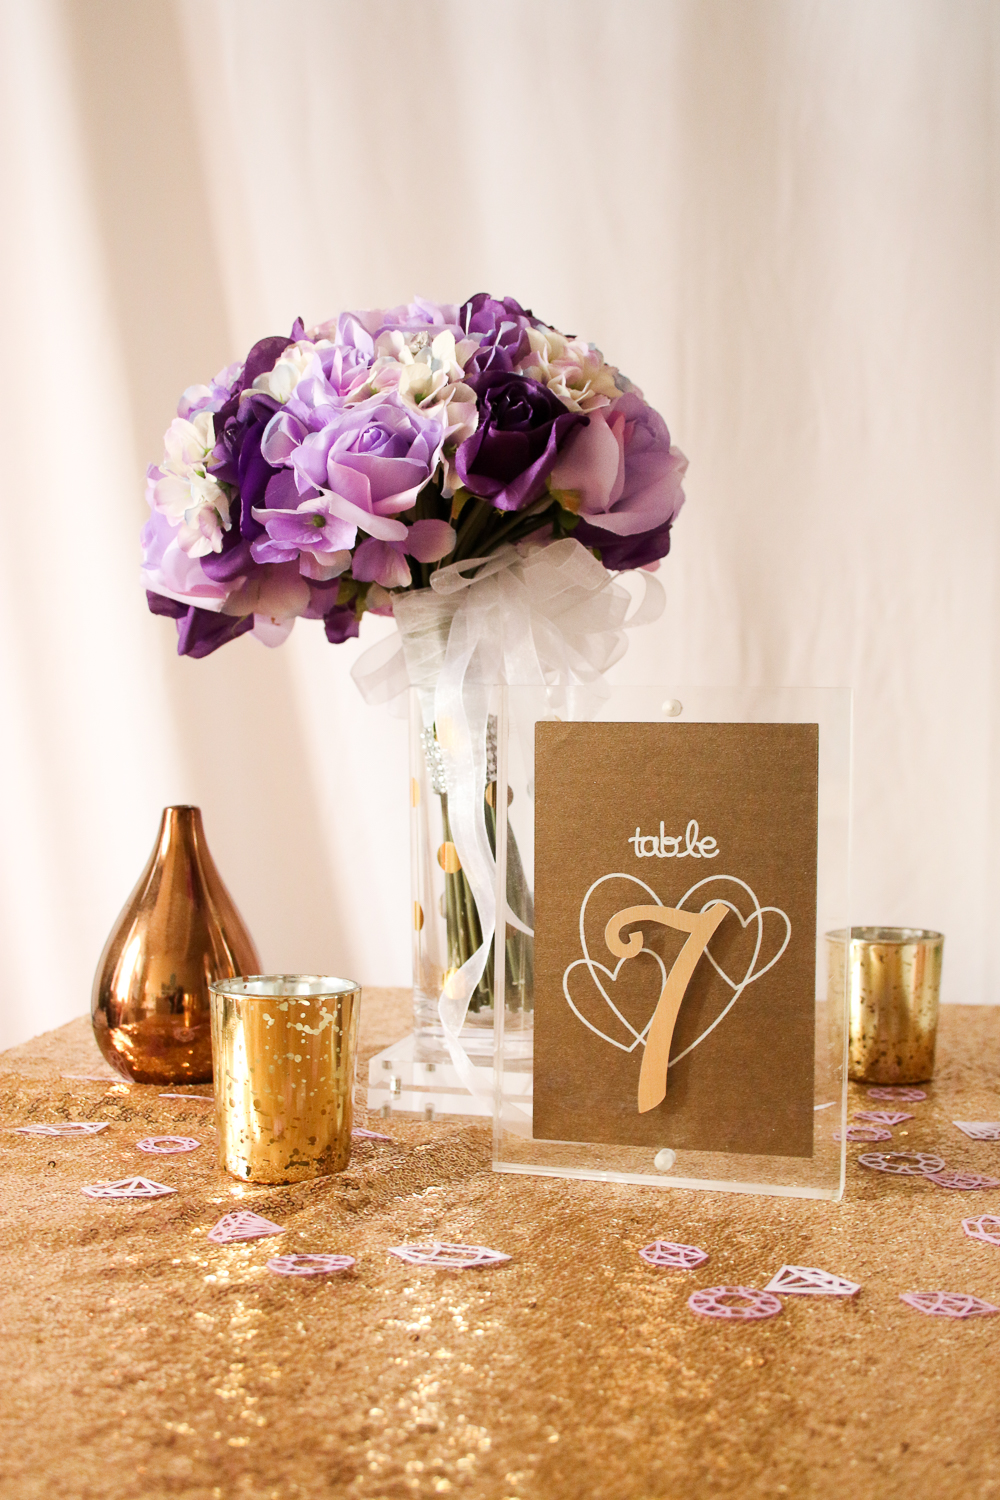 Acrylic Block Table Numbers